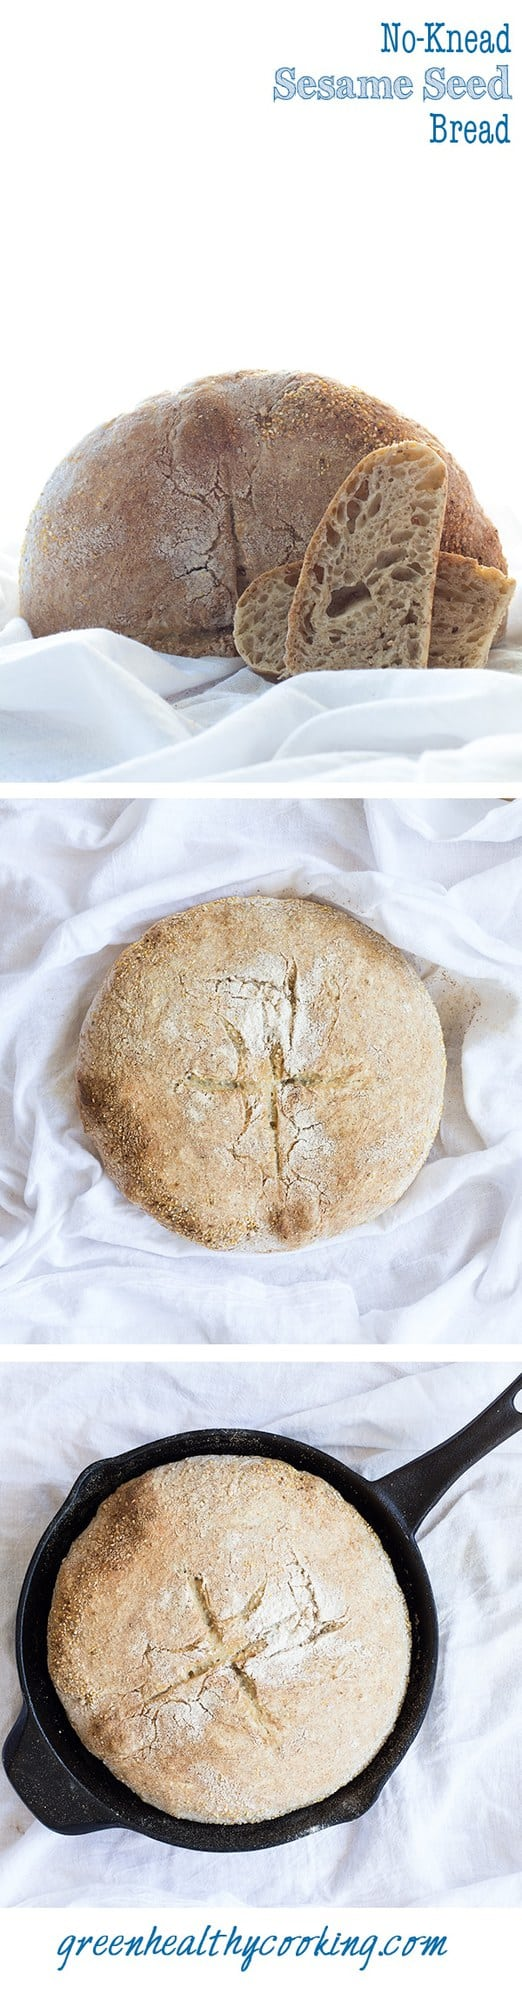 Collage of No-Knead Sesame Seed Bread images with text overlay for Pinterest.